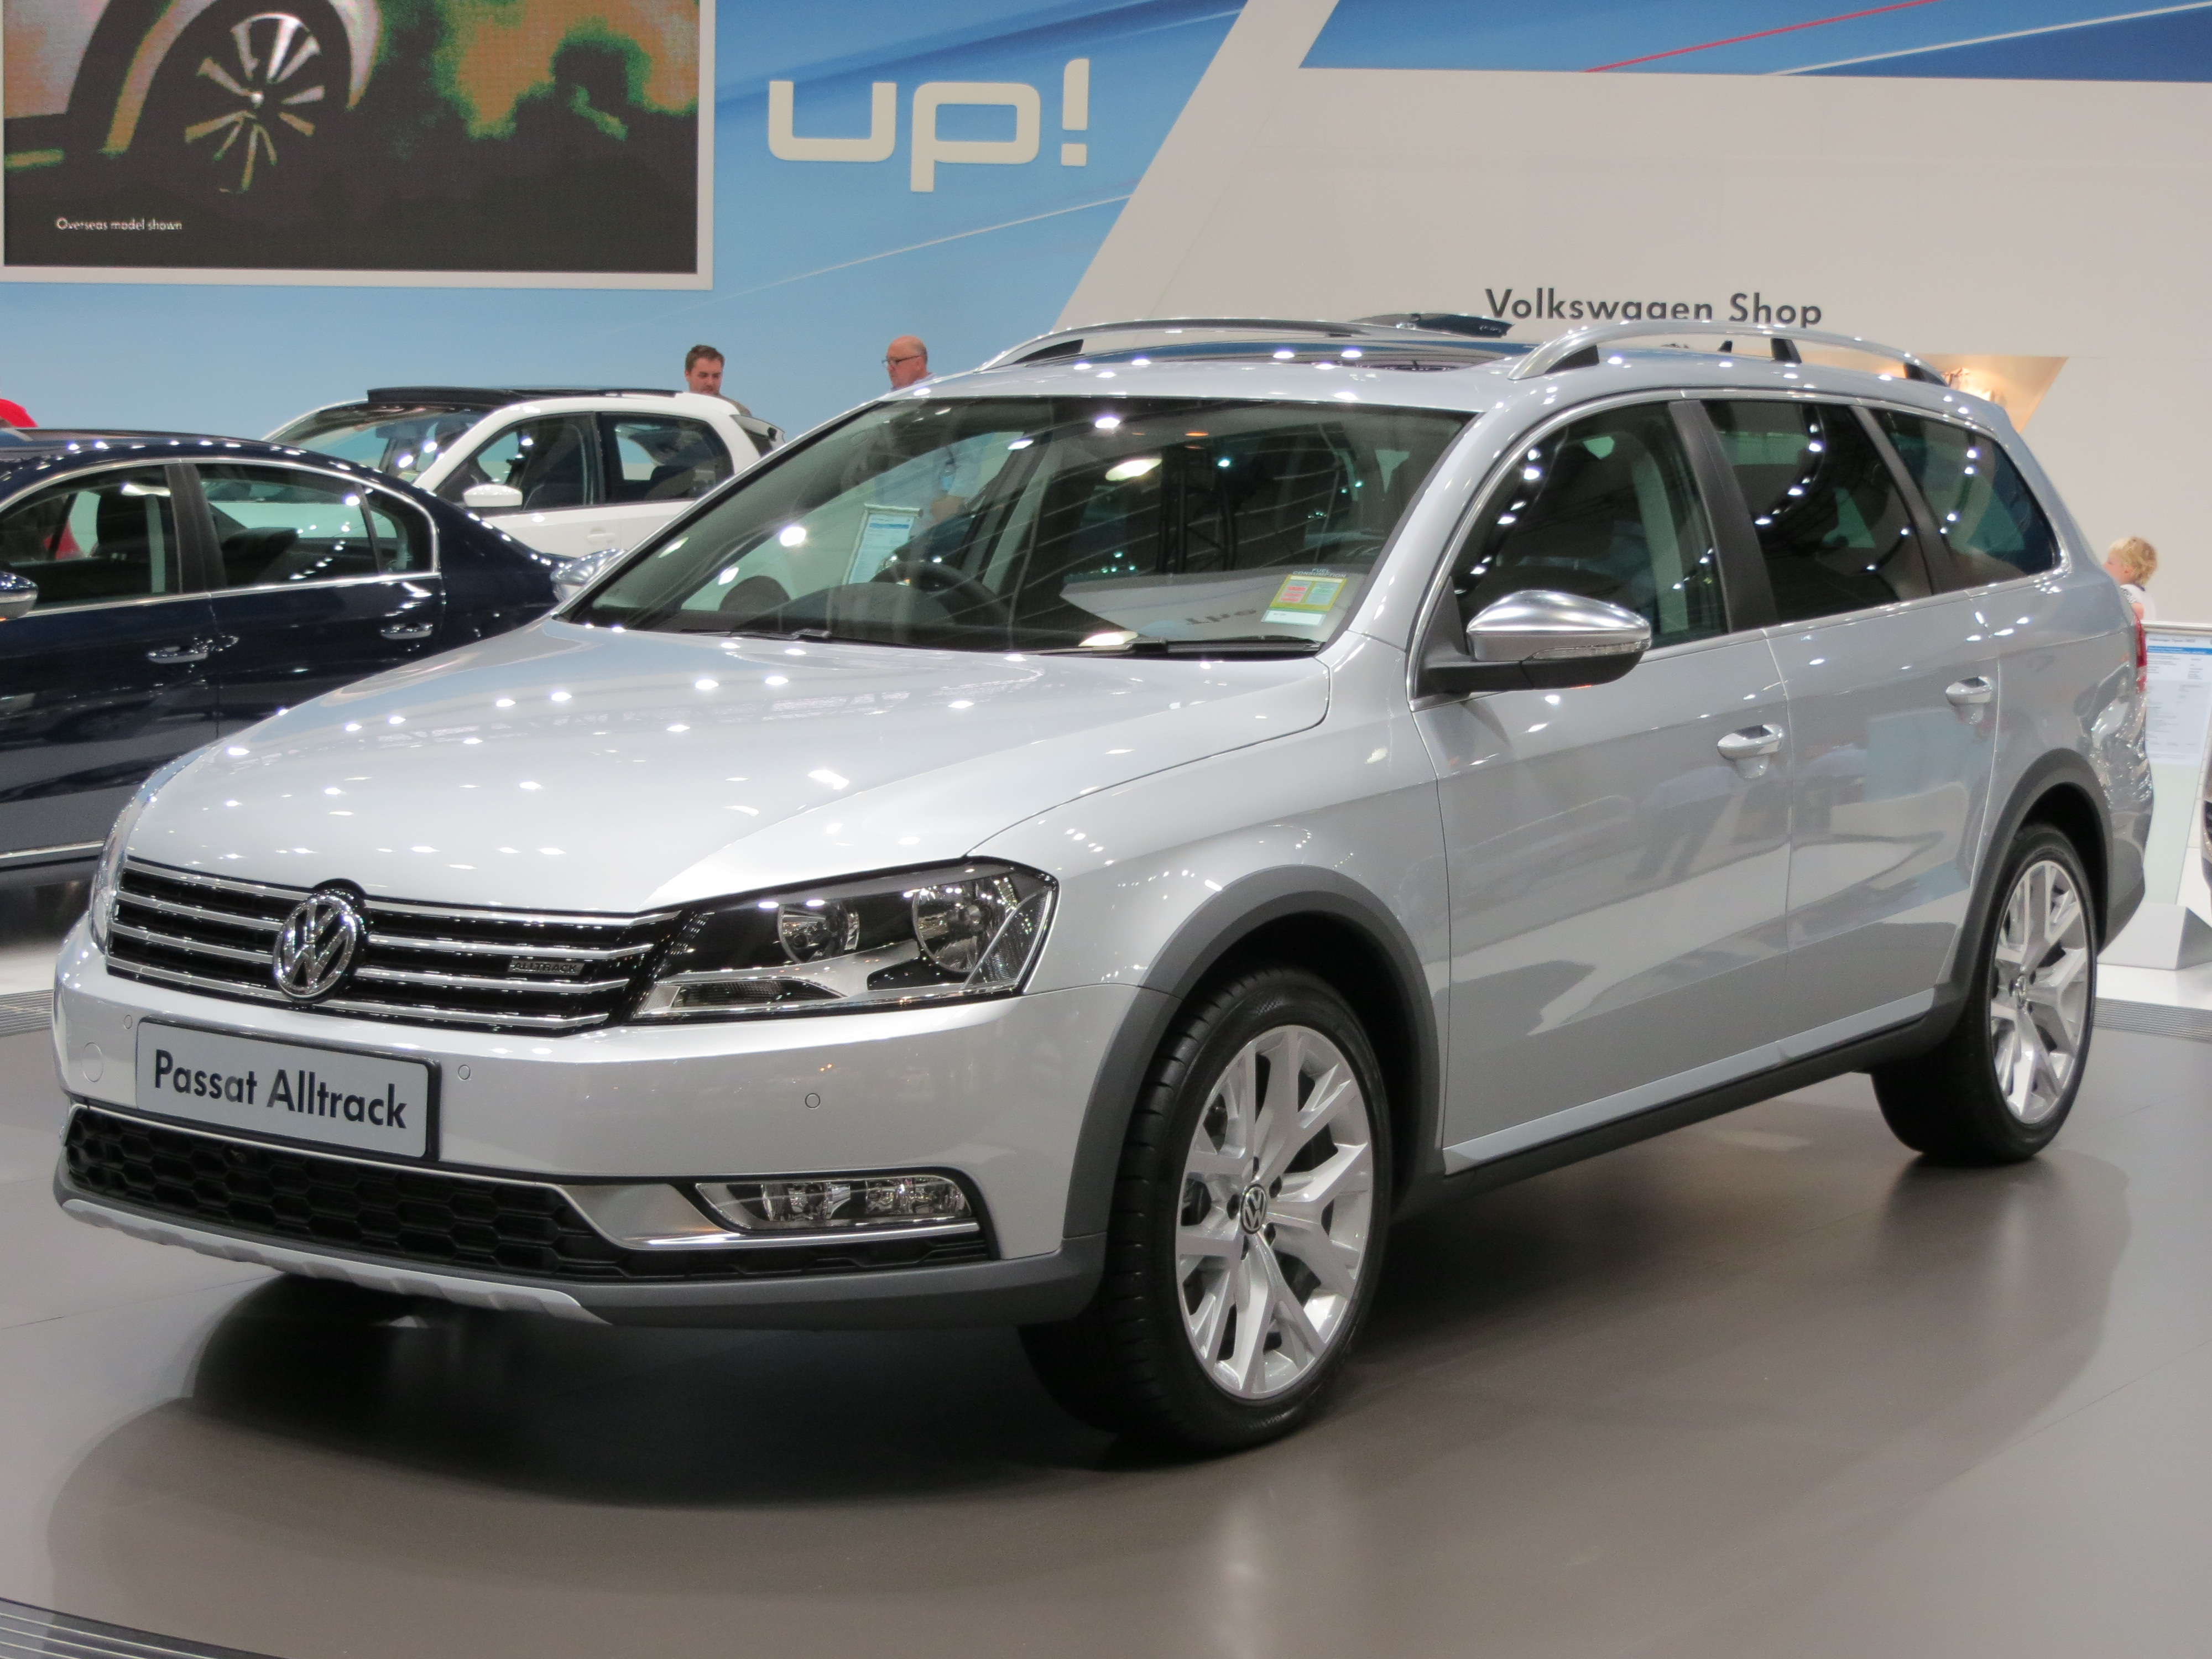 bestand 2012 volkswagen passat 3c my13 alltrack station. Black Bedroom Furniture Sets. Home Design Ideas